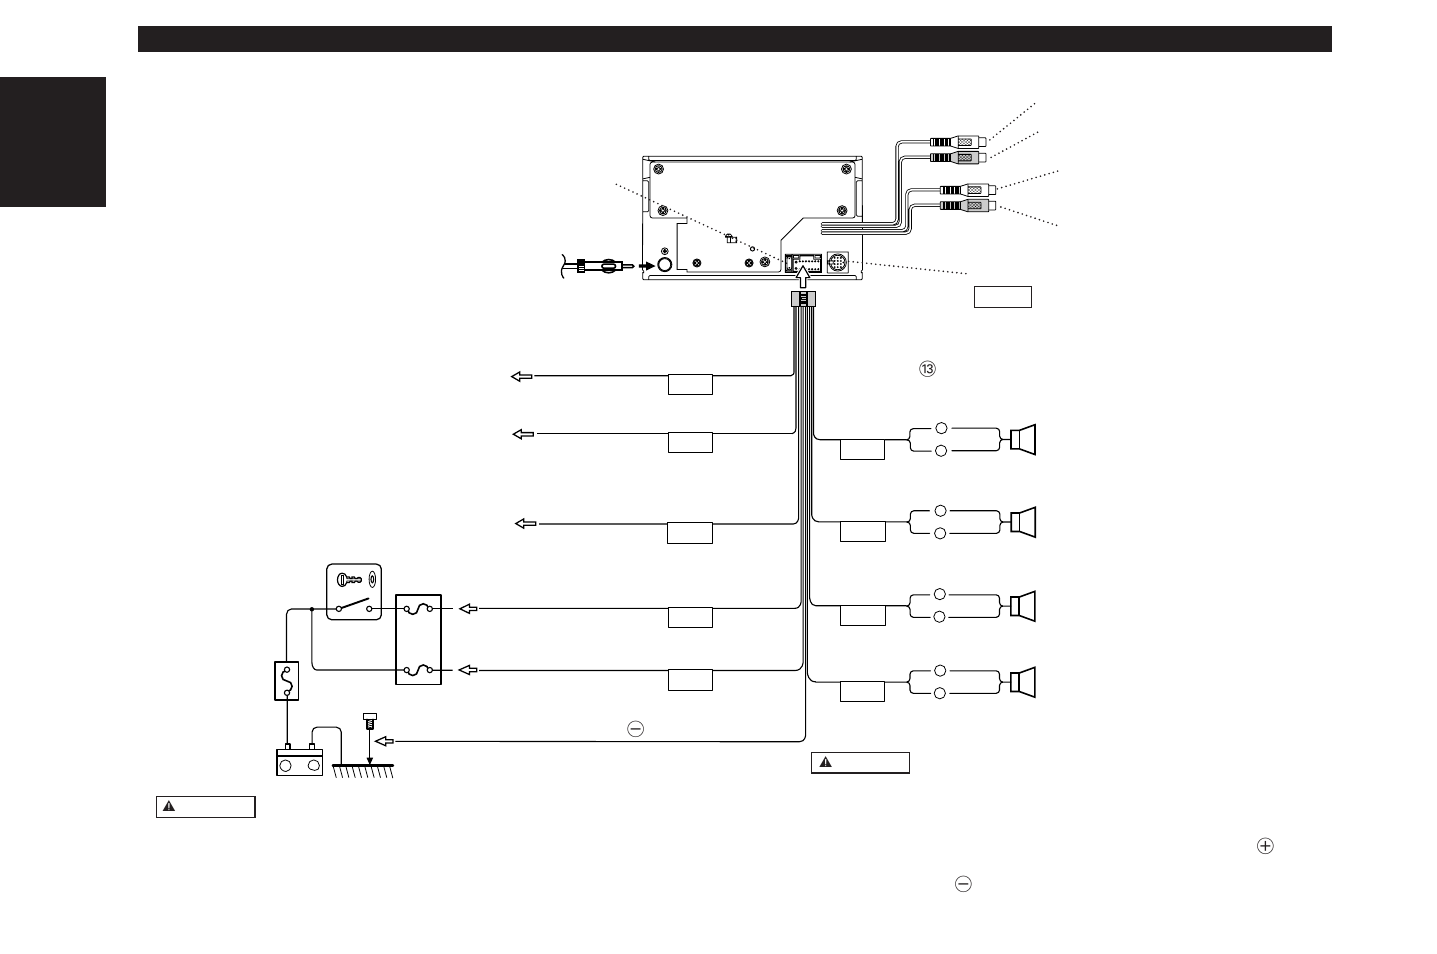 Wiring diagram kenwood dpx information of wiring diagram connecting wires to terminals english kenwood dpx 4010 user rh manualsdir com wiring diagram for kenwood dpx500bt kenwood dpx300u wiring diagram asfbconference2016 Gallery